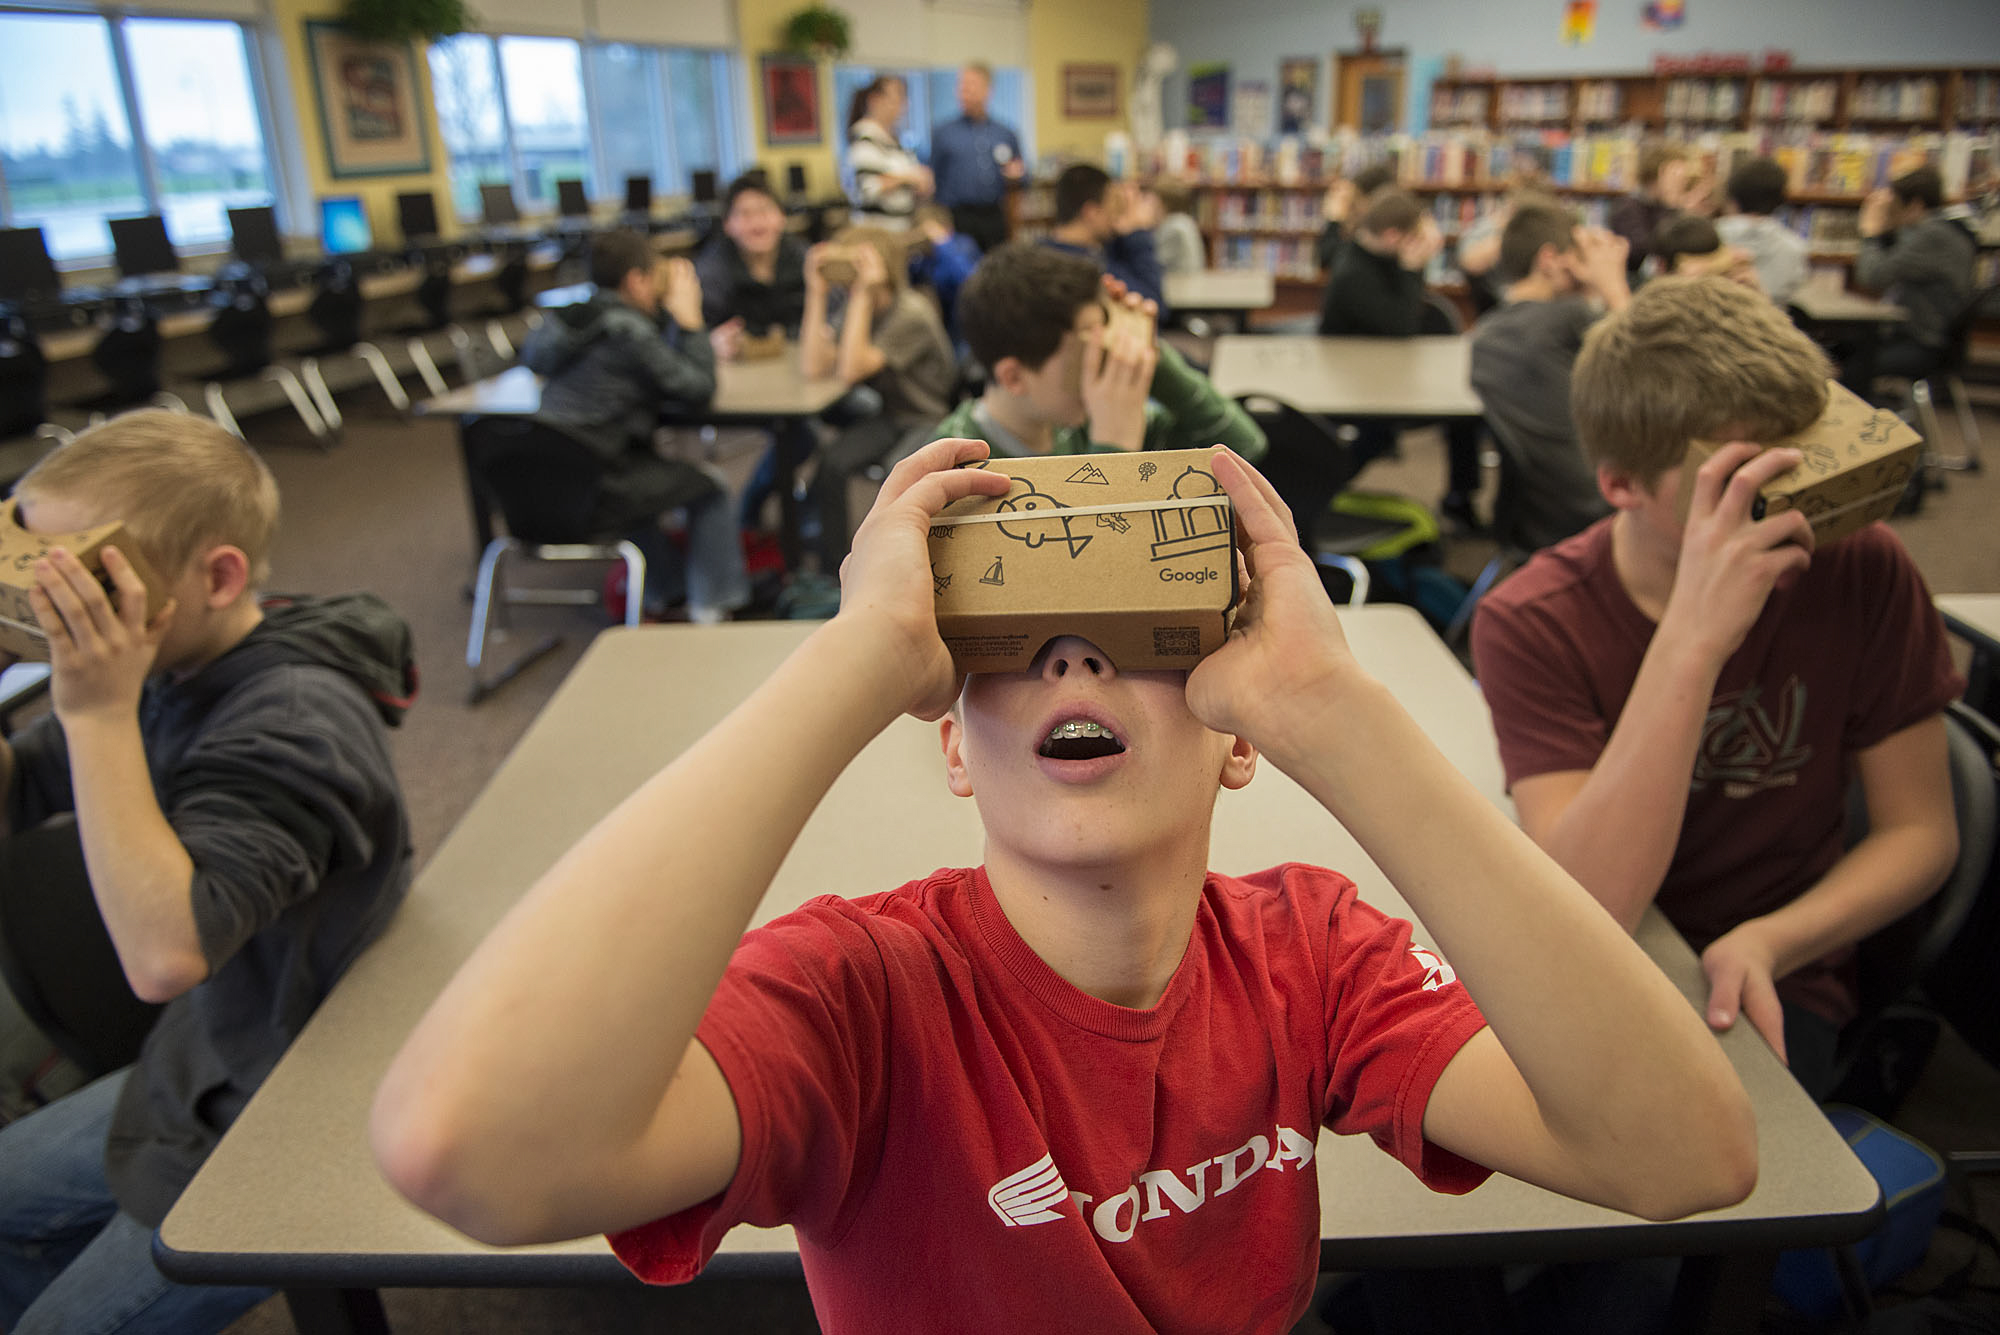 Chief Umtuch Middle School eighth-grader Jonah Muonio, 13, center, reacts while using virtual reality glasses with classmates Thursday morning, Jan. 14, 2016 in Battle Ground. (Amanda Cowan/The Columbian)